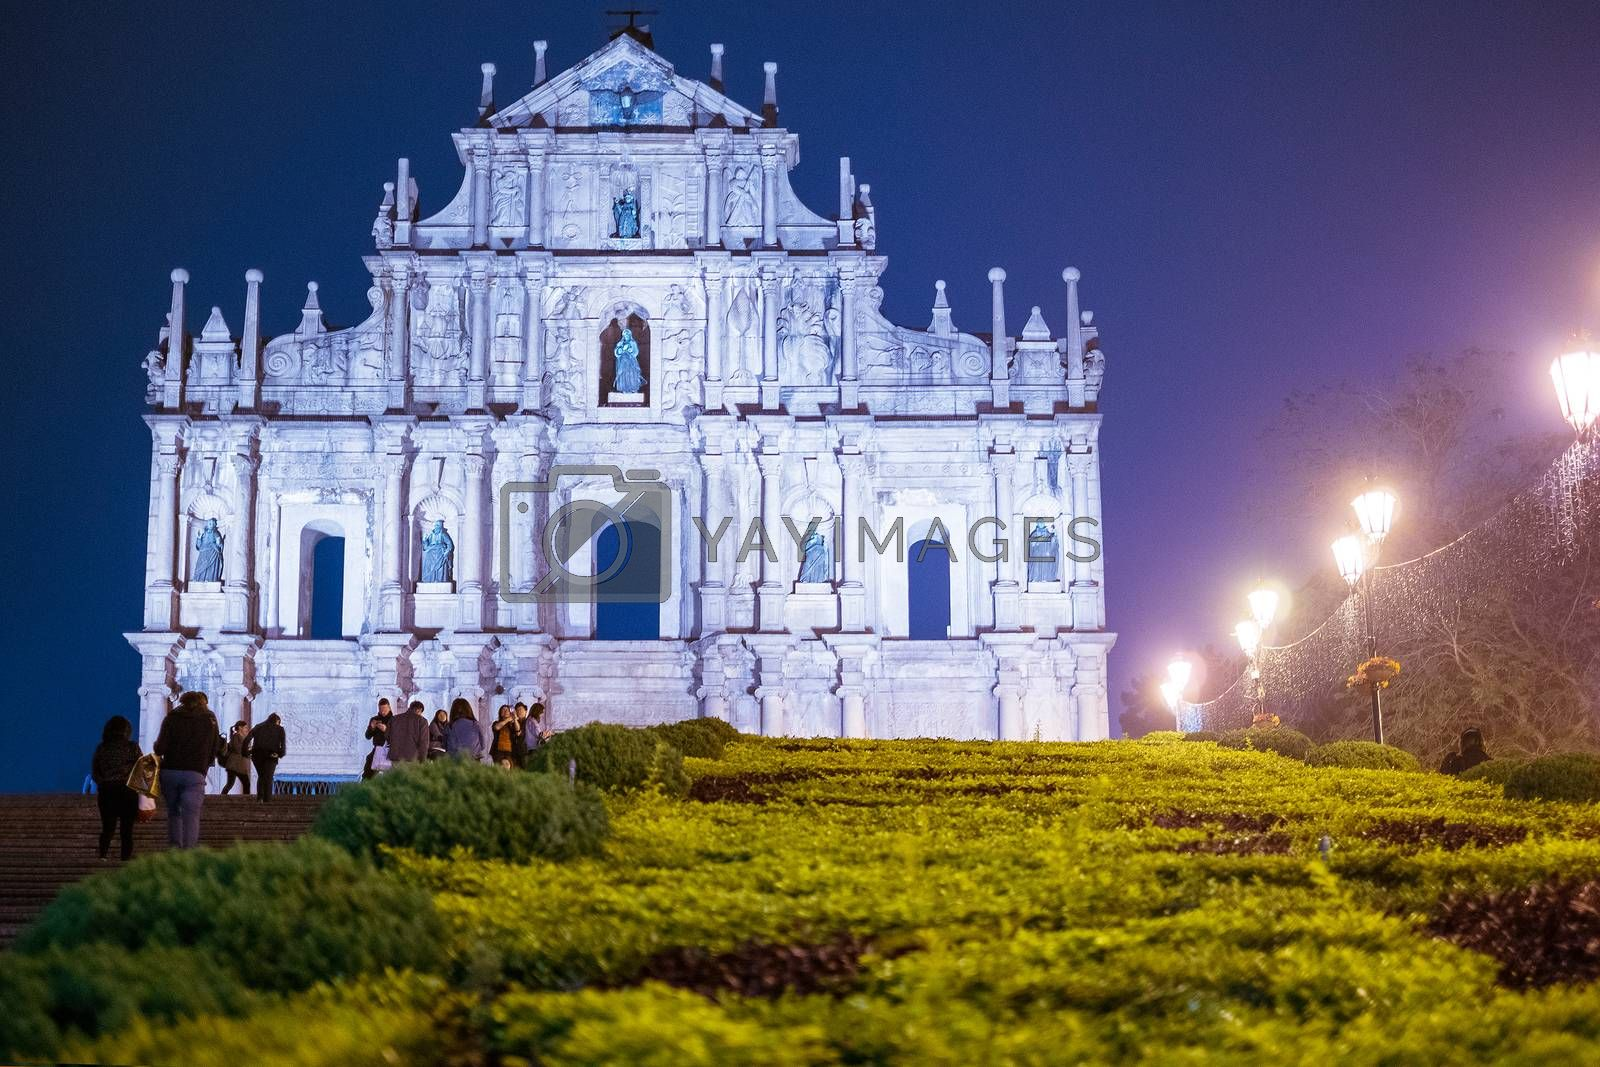 Ruins of St. Paul's. one of Macau most famouse landmark and fabulous UNESCO World Heritage Site.